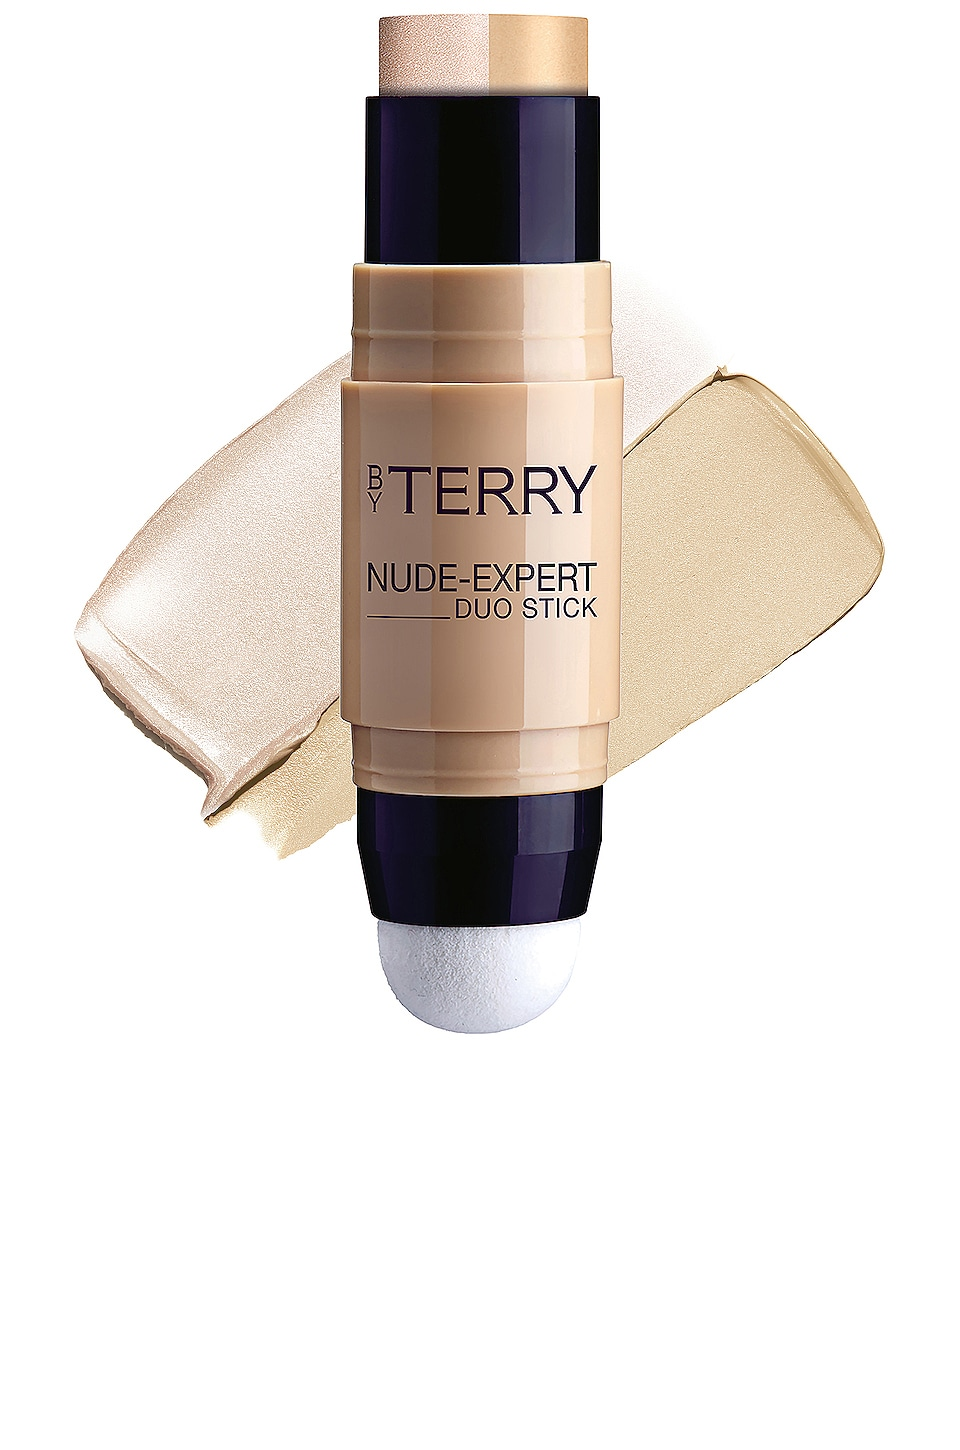 By Terry Nude-Expert Duo Stick in 2.5 Nude Light